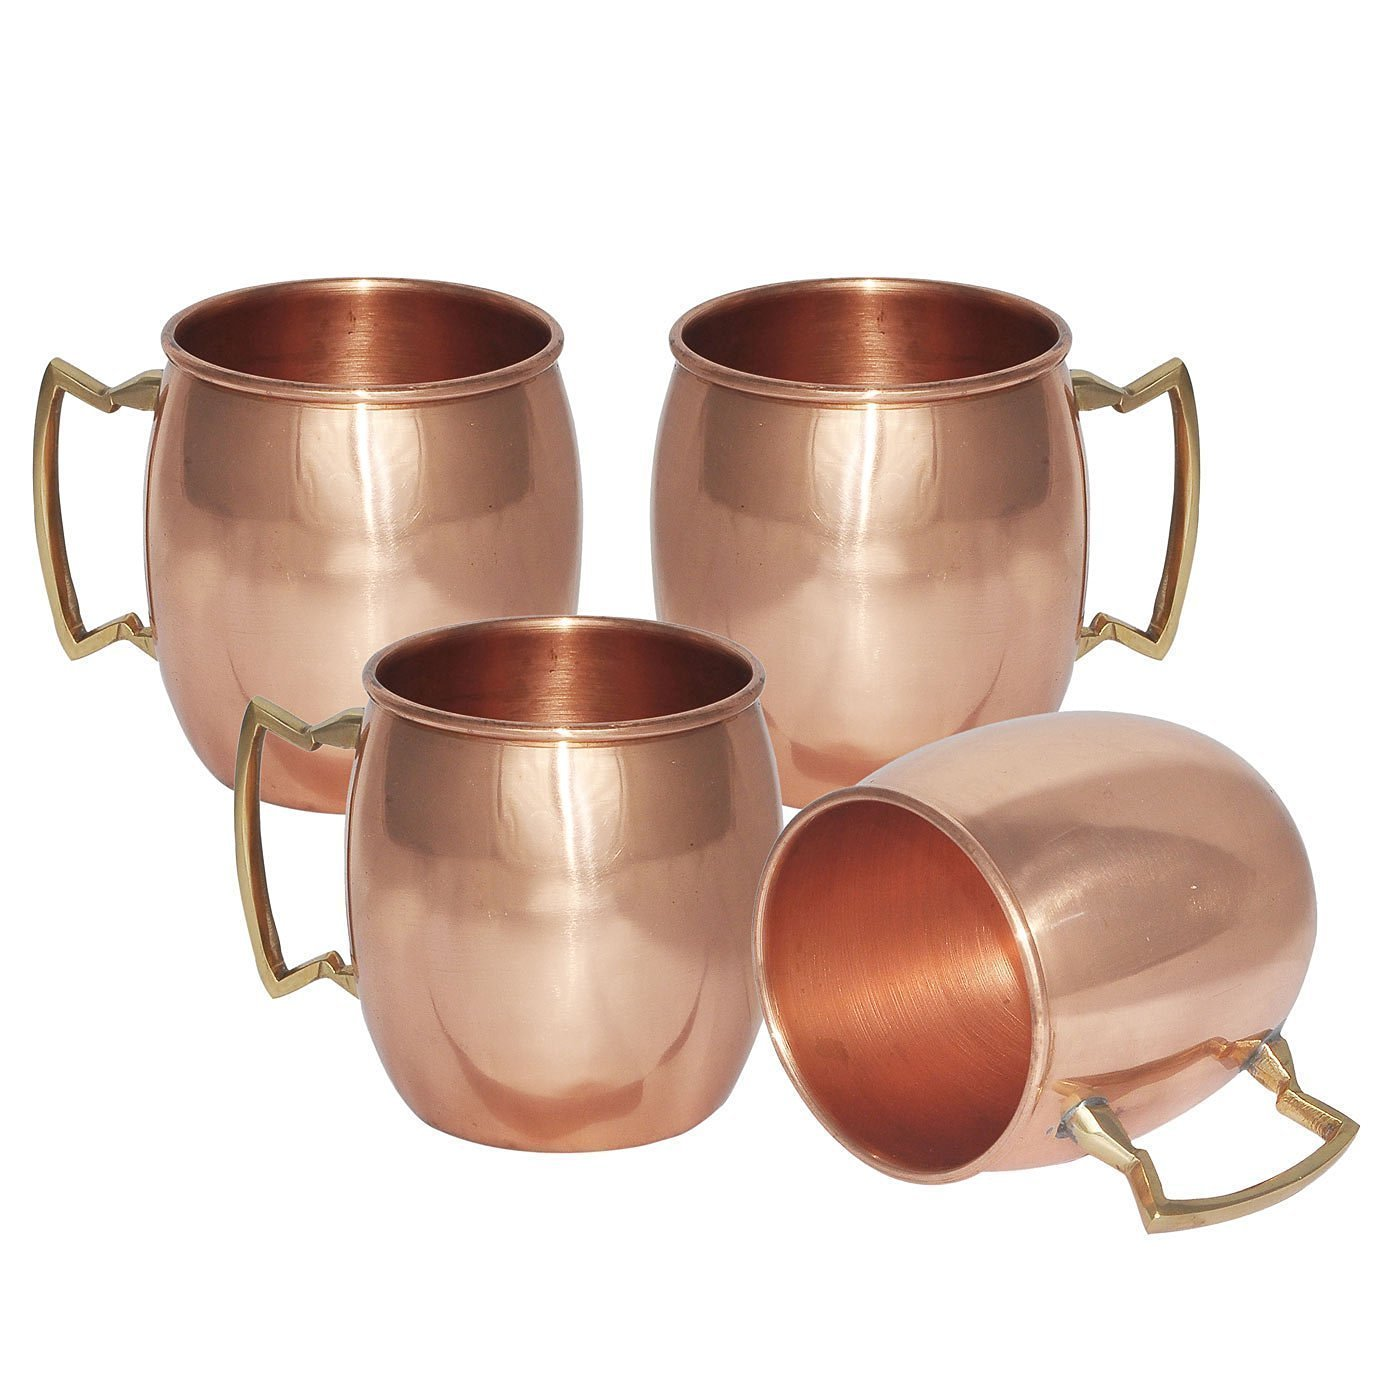 ZAP Impex Moscow Mule 100% Solid Pure Copper Mugs/Cups - Set of 4 (16-ounce/Set of 4, Smooth) by SAINT